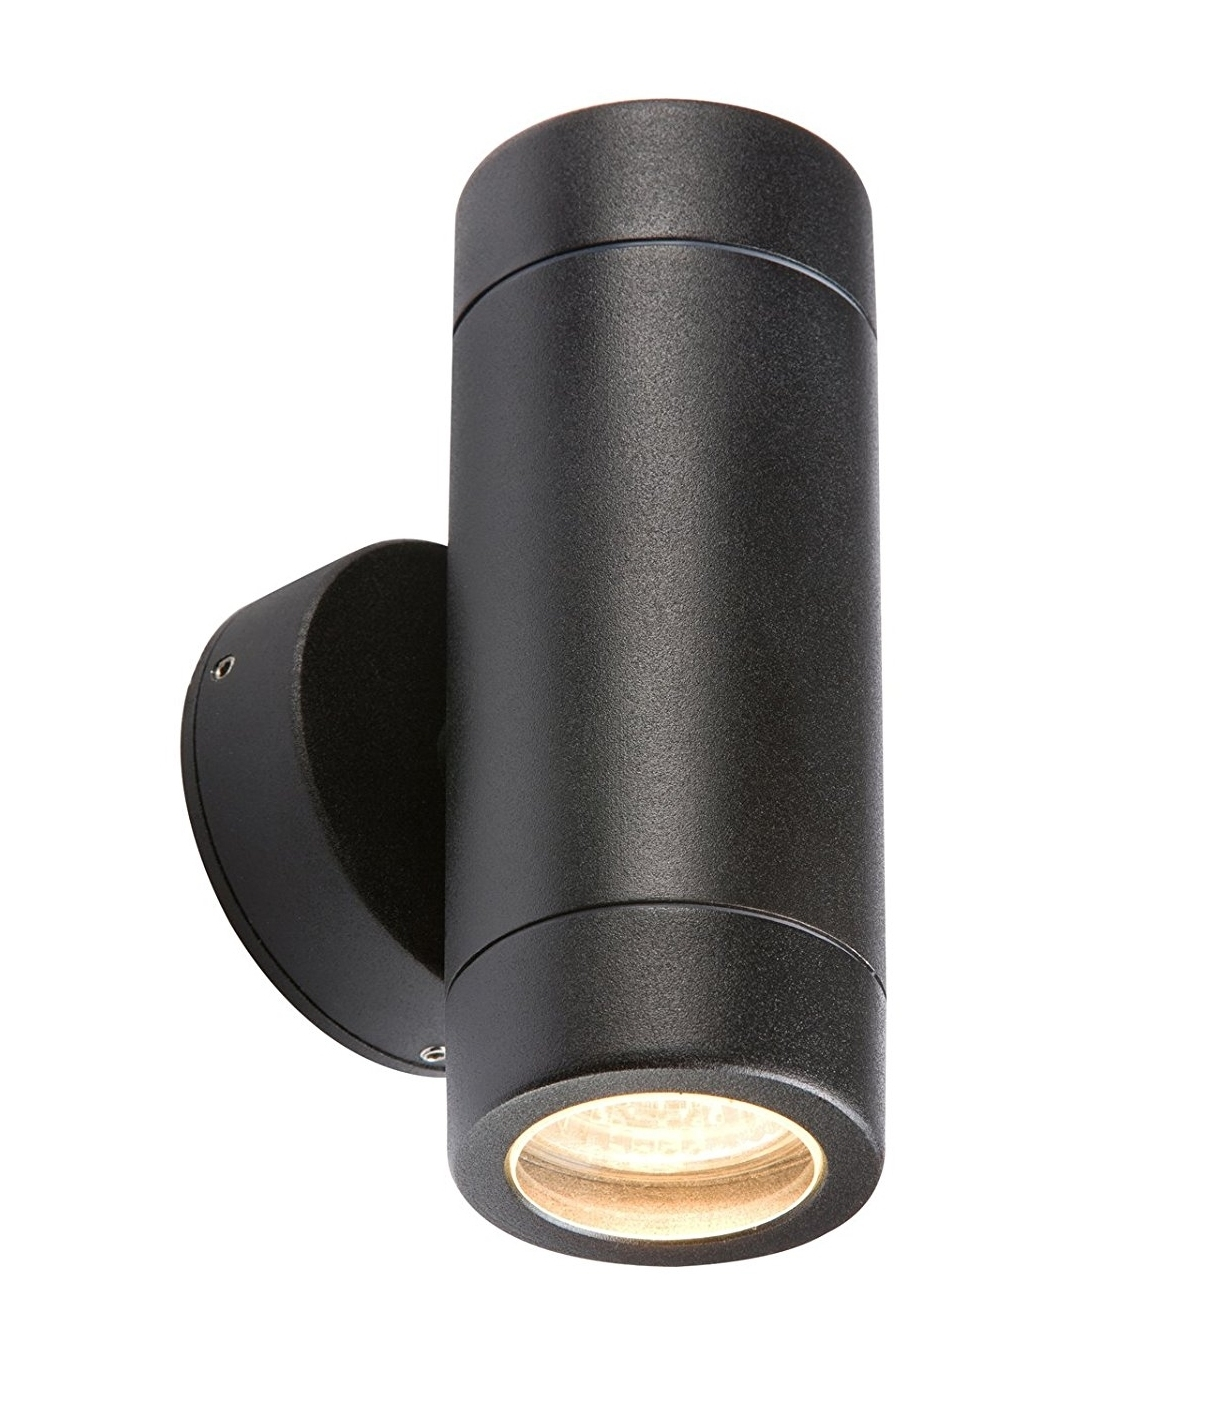 Exterior Up Amp Down Ip65 Wall Light